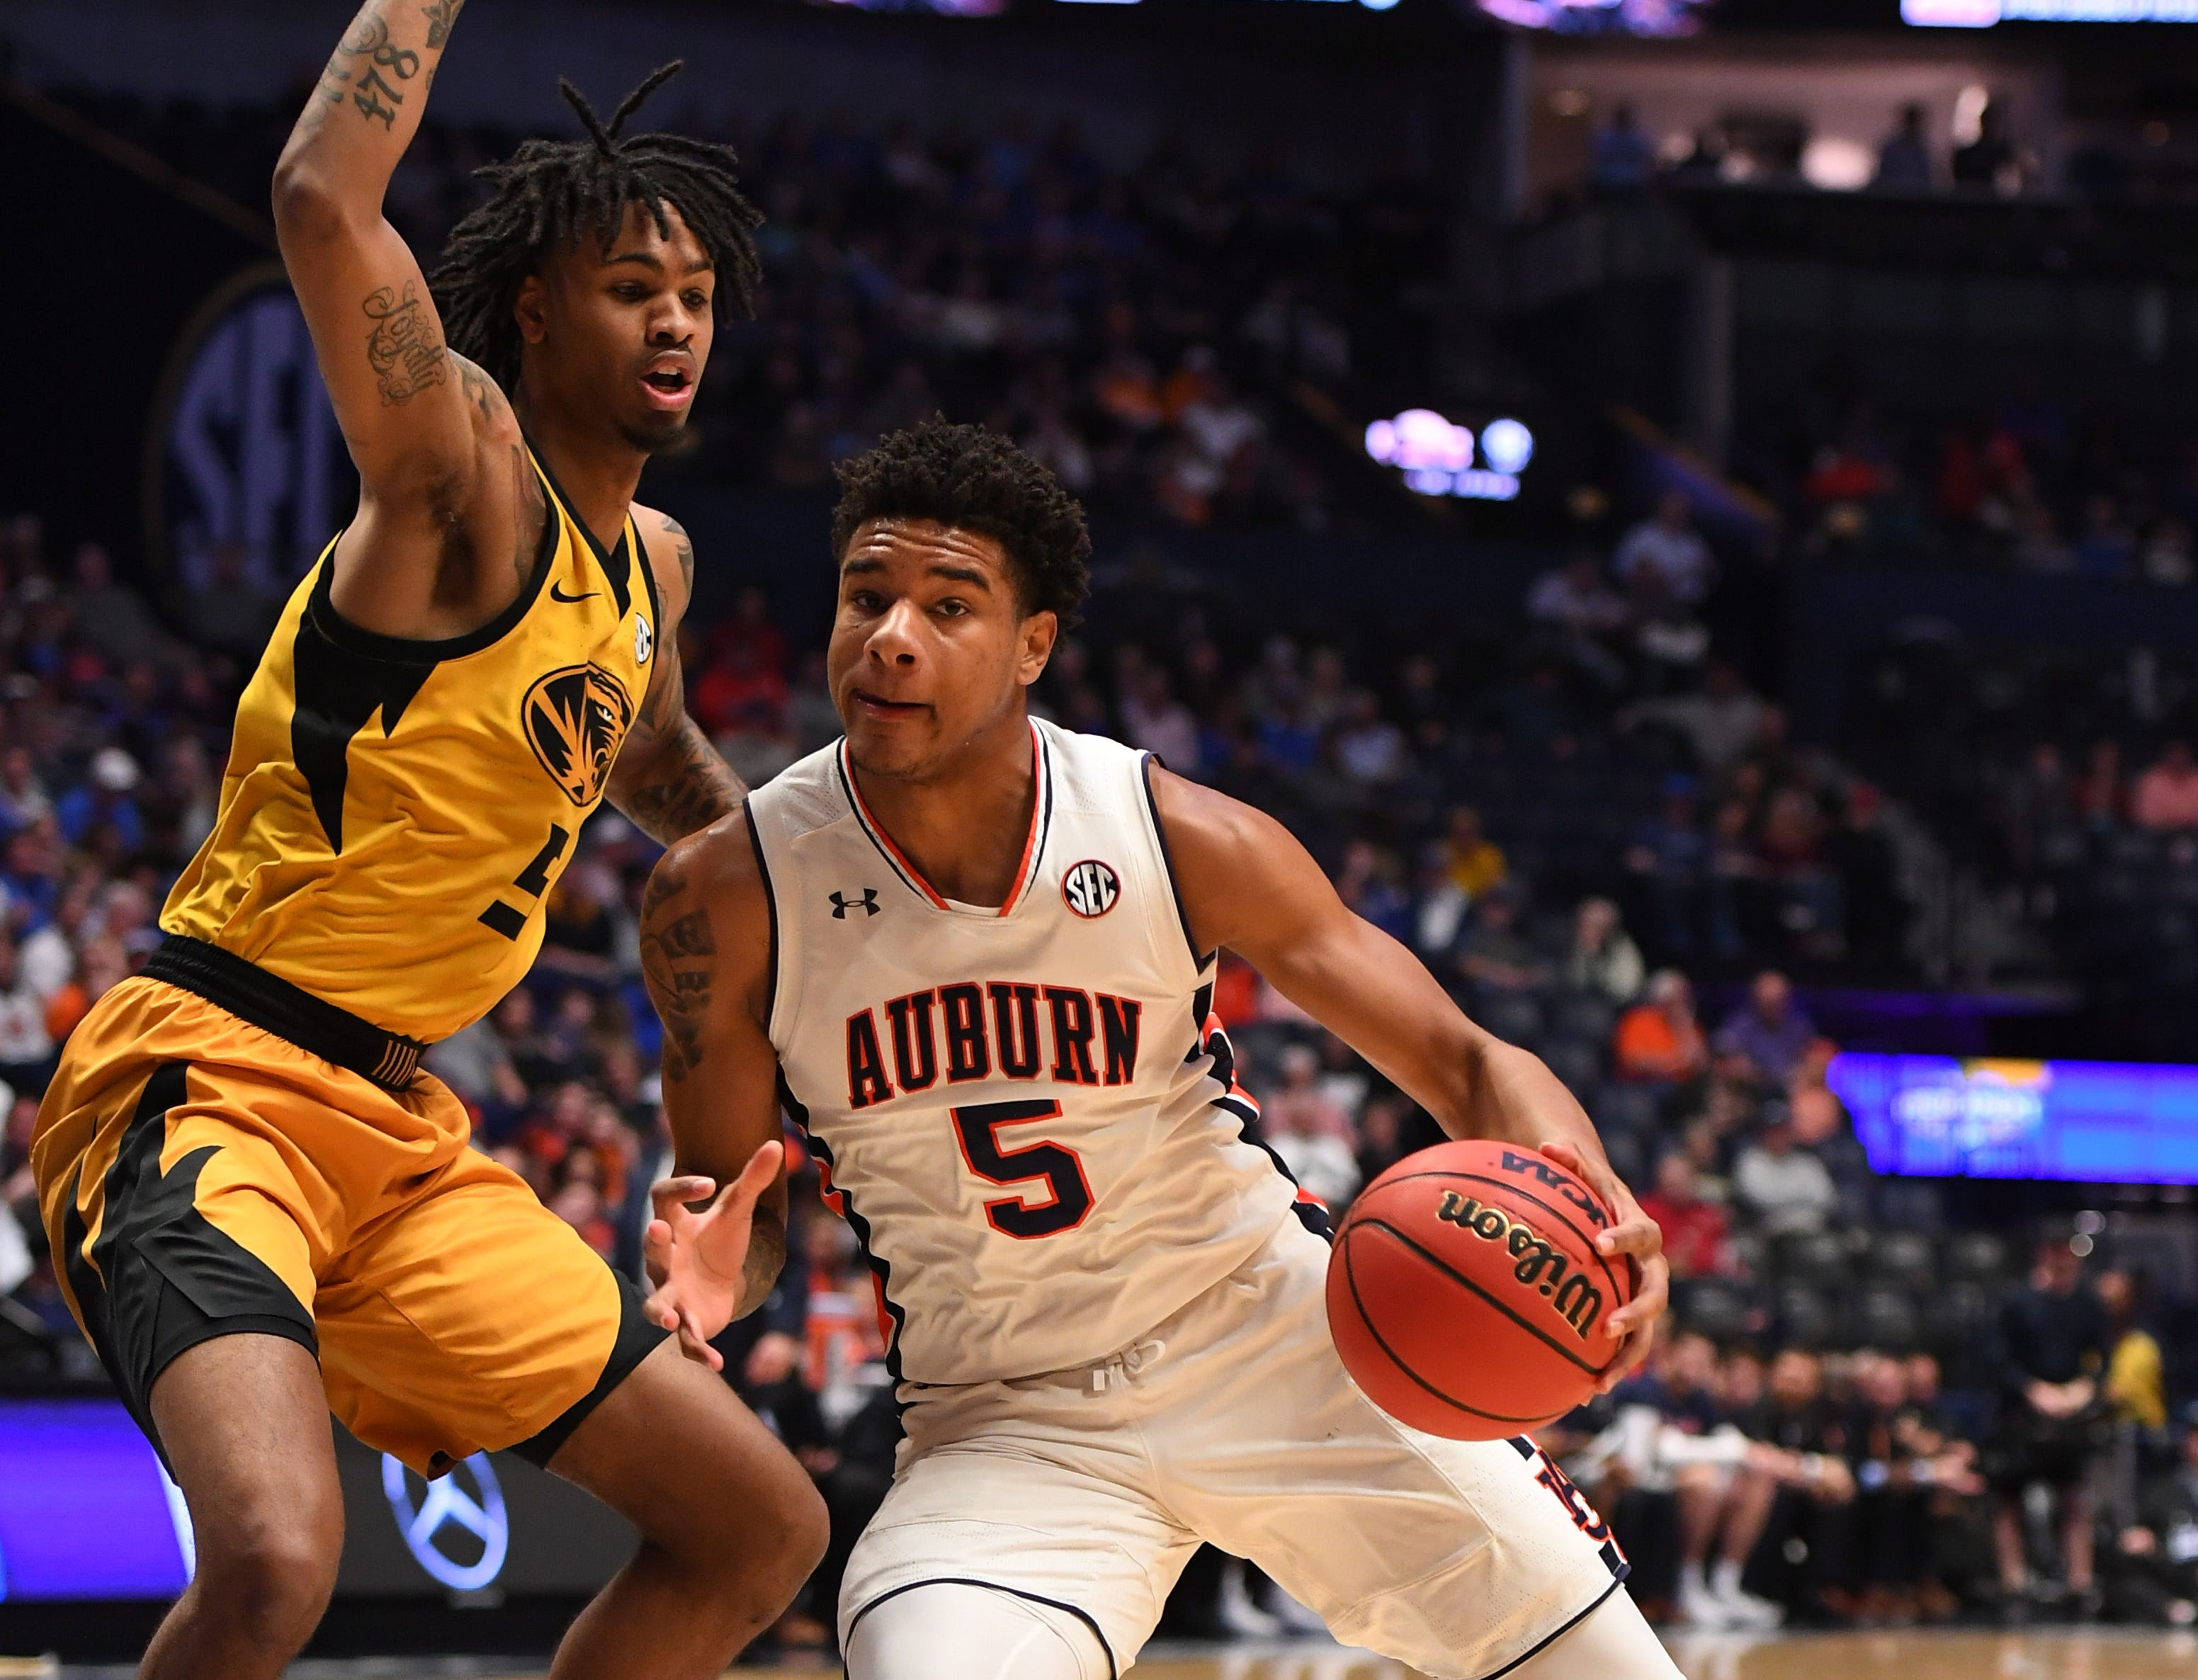 Mar 14, 2019; Nashville, TN, USA; Auburn Tigers forward Chuma Okeke (5) works against Missouri Tigers forward Mitchell Smith (5) during the first half of the SEC conference tournament at Bridgestone Arena. Mandatory Credit: Christopher Hanewinckel-USA TODAY Sports